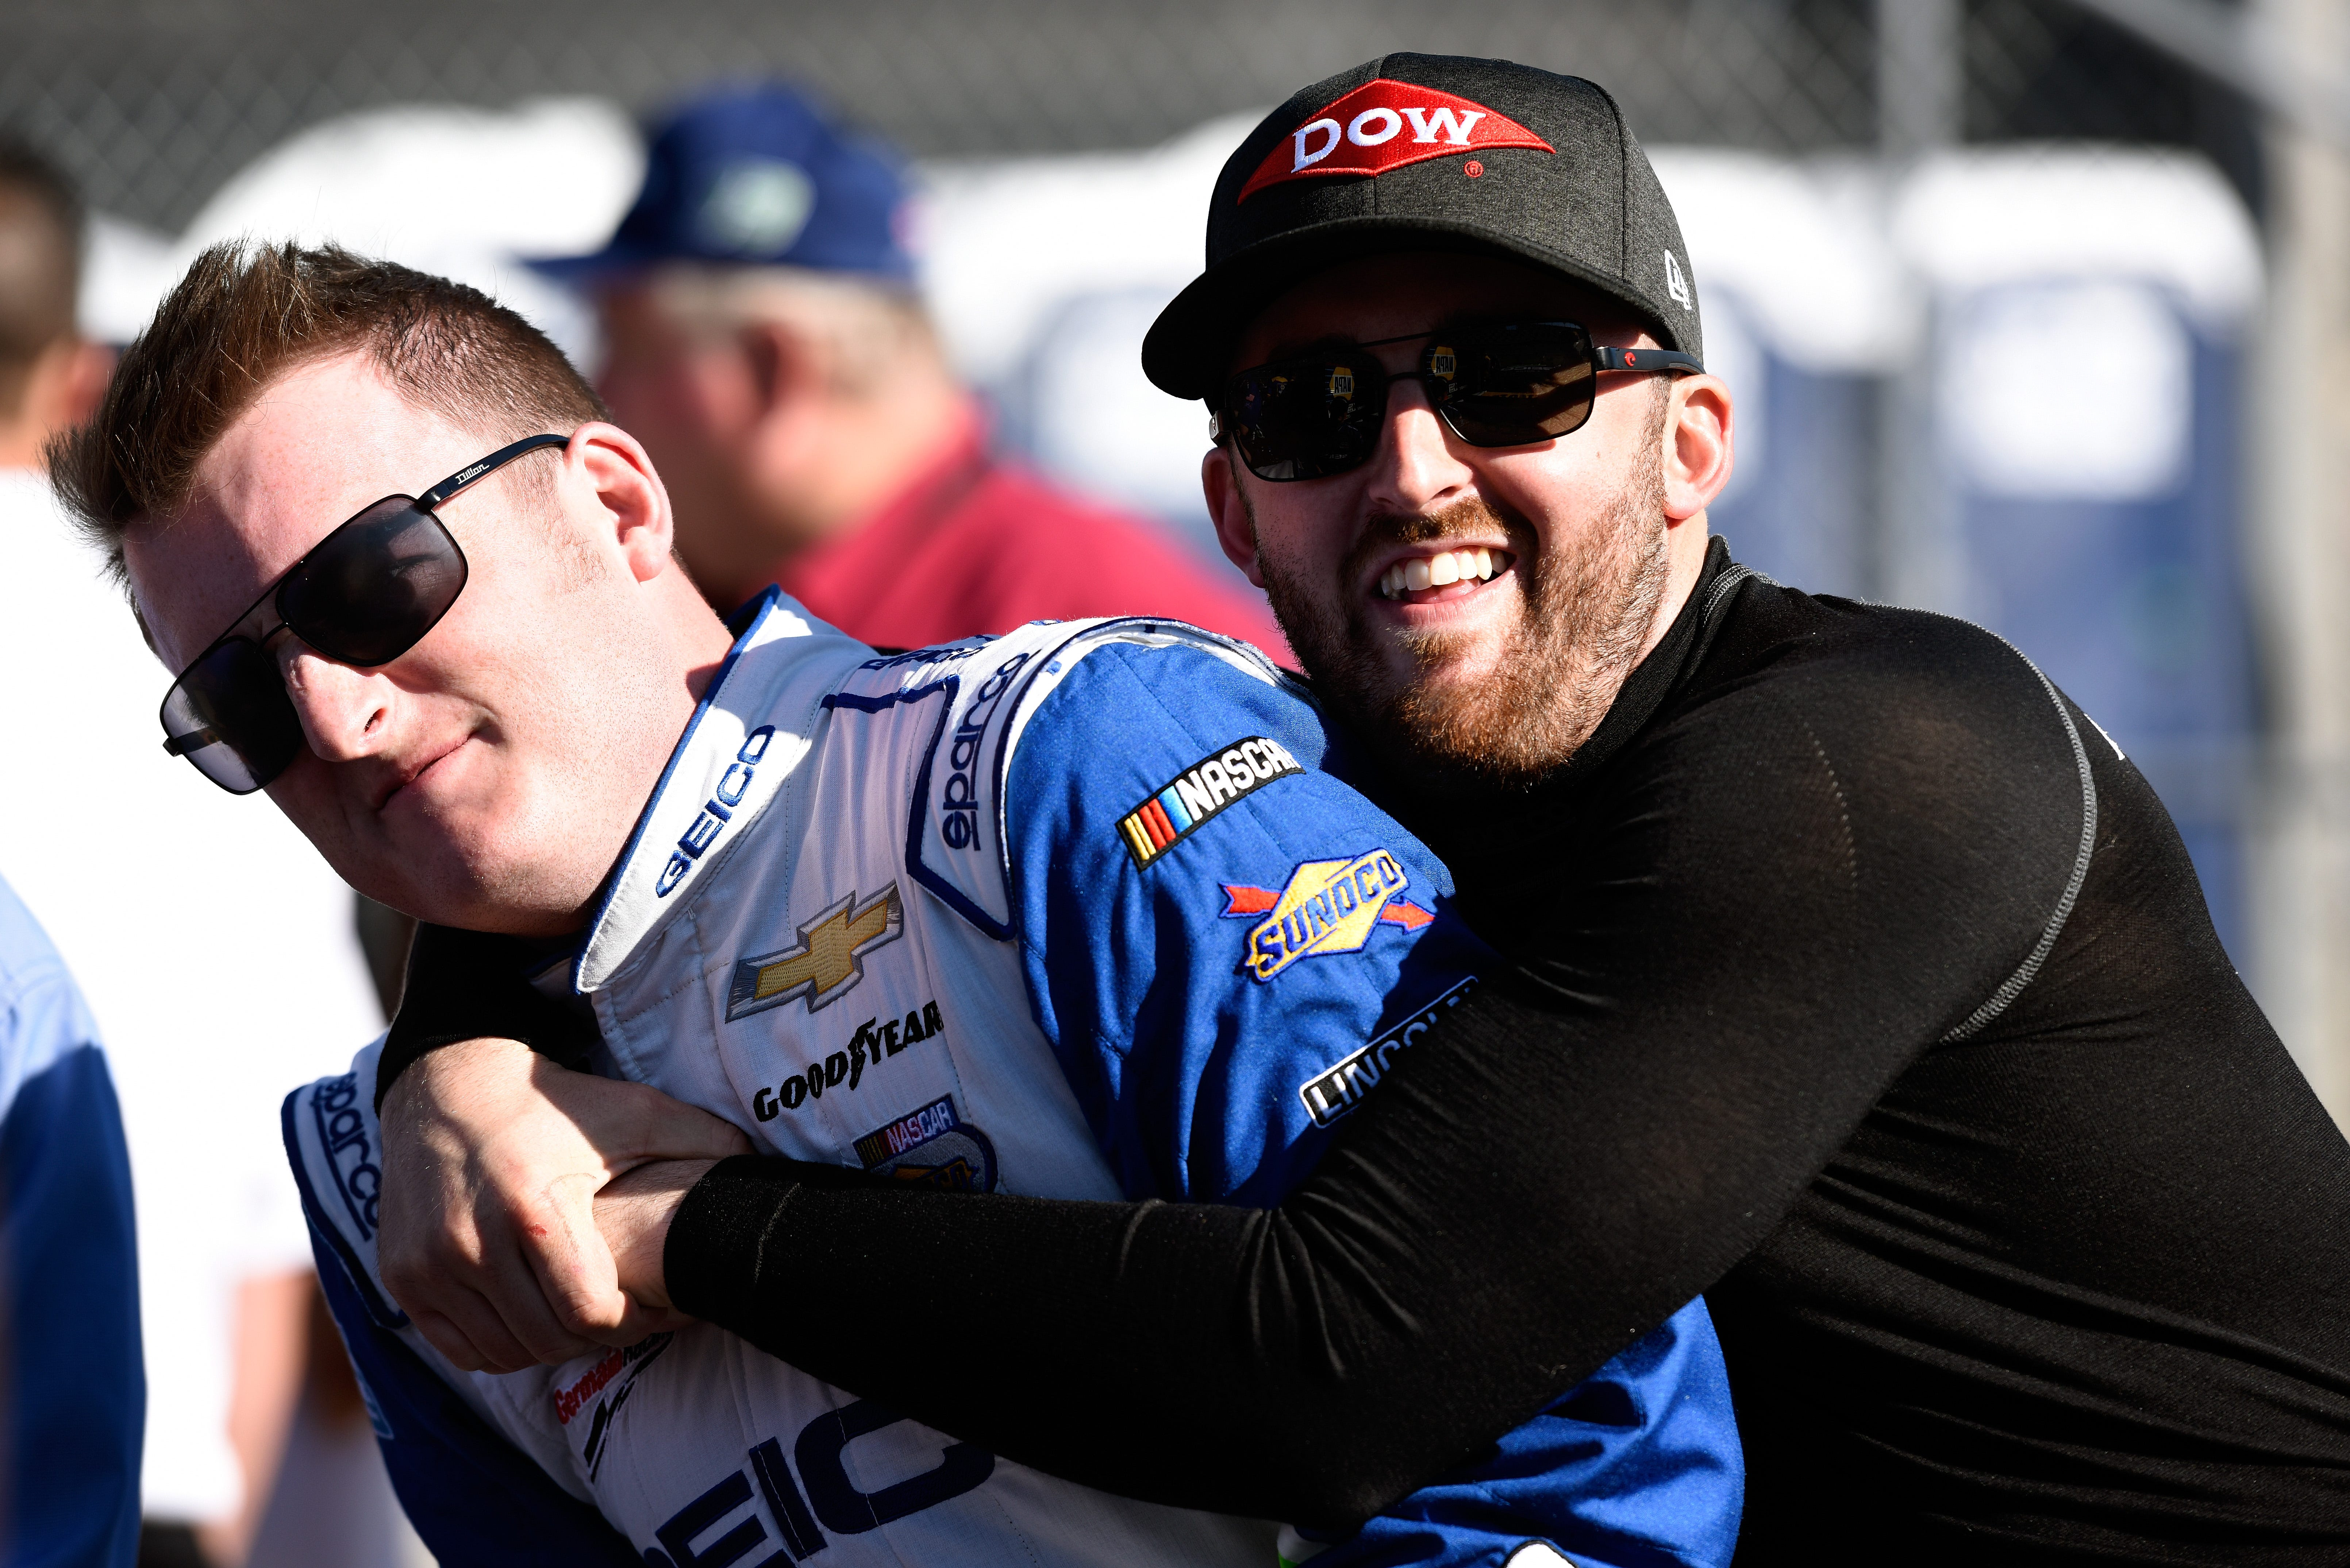 2 brothers are facing off at the Daytona 500